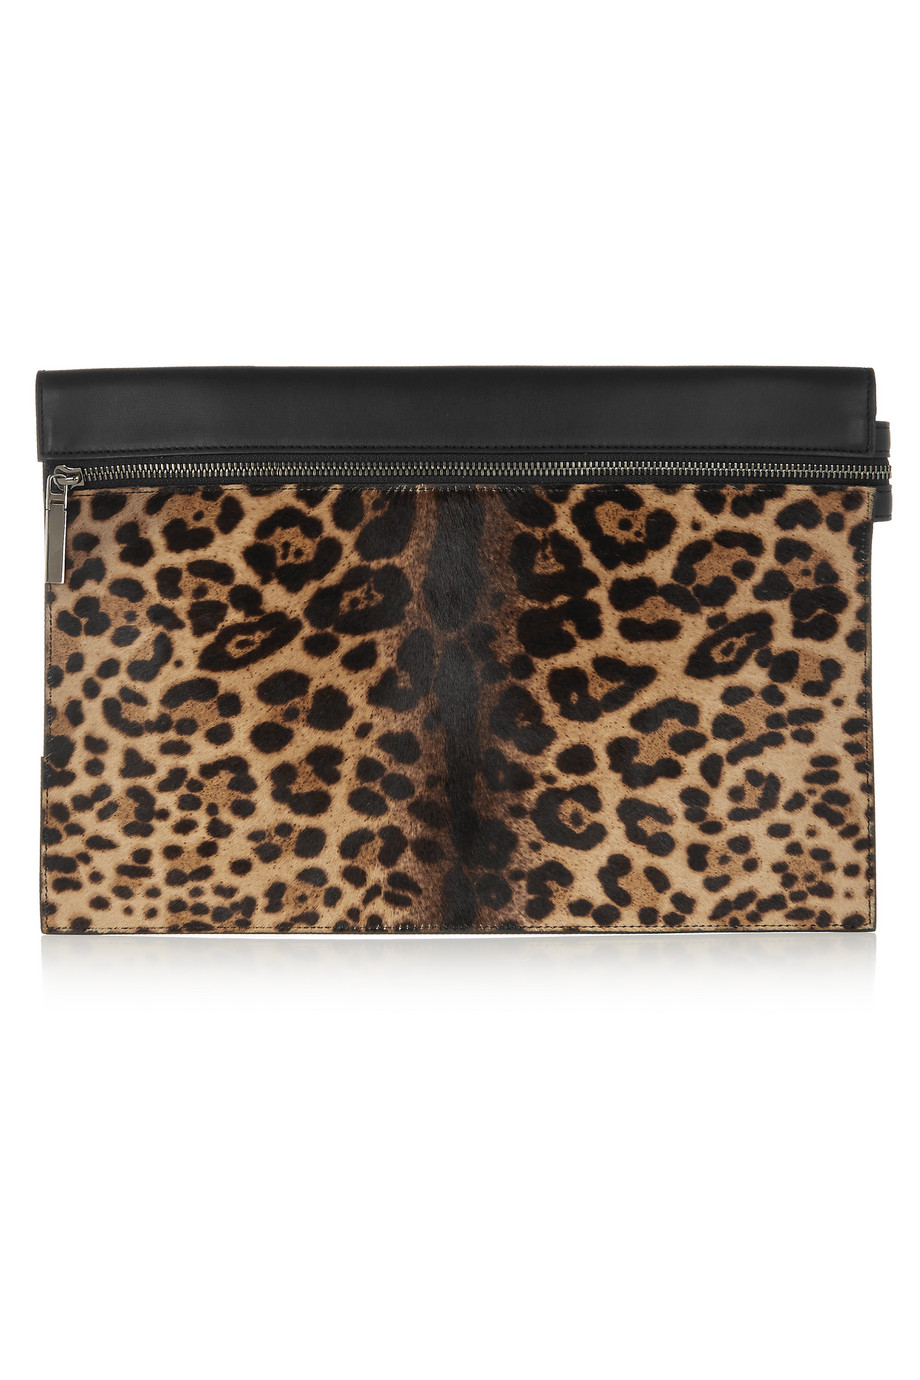 Victoria Beckham Large Leopard-Print Calf Hair and Leather Clutch, Leopard Print, Women's